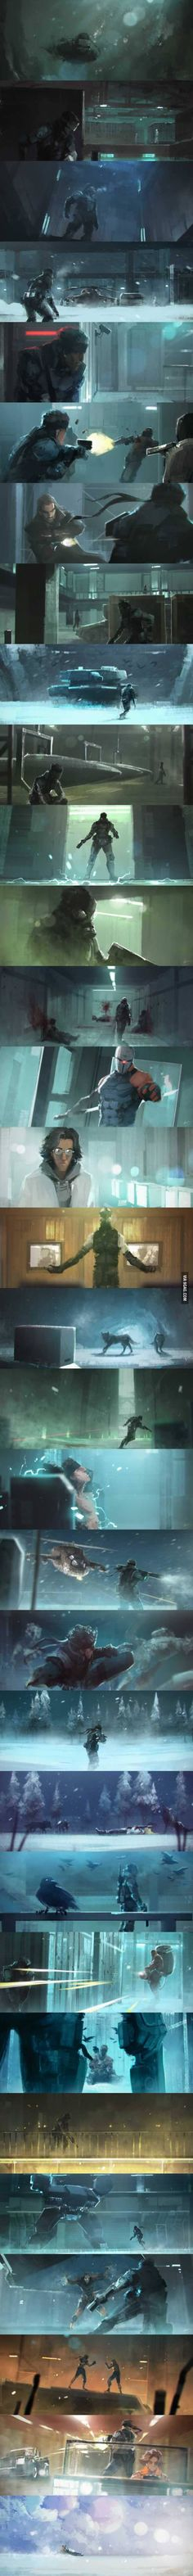 Metal Gear Solid. An Amazing Story Told With Amazing Art - 9GAG